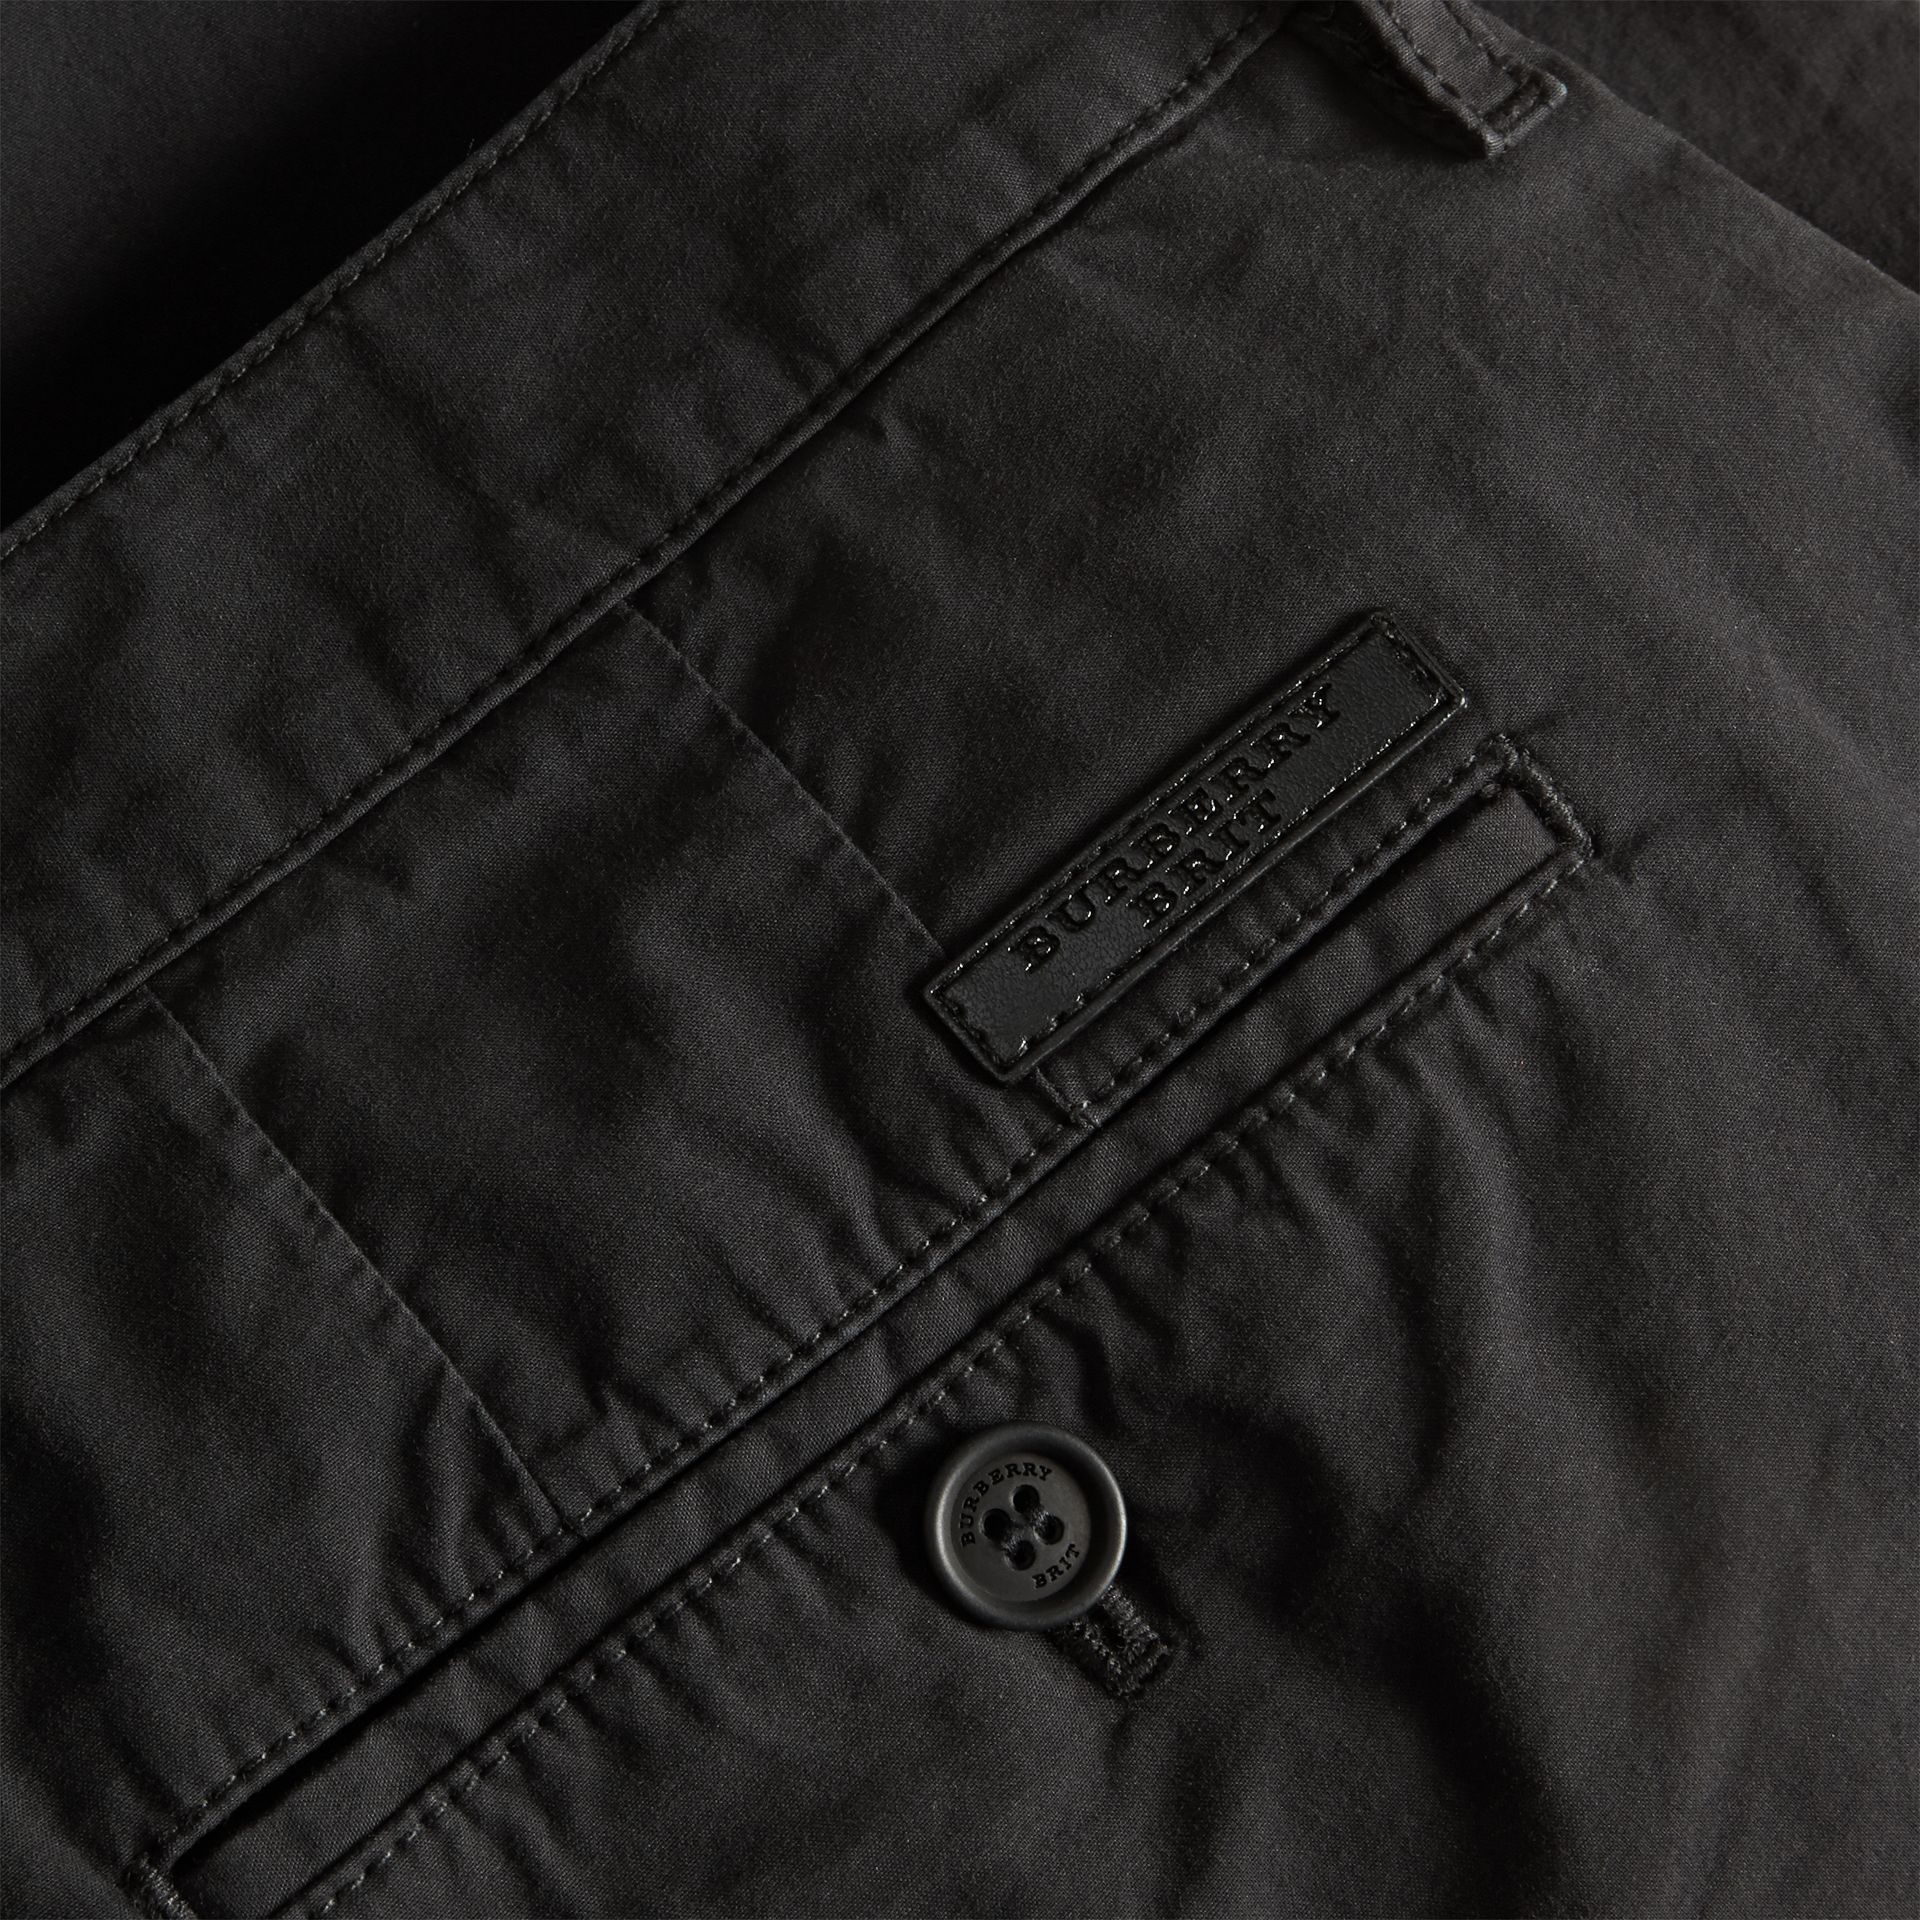 Cotton Poplin Chino Shorts in Black - Men | Burberry - gallery image 2